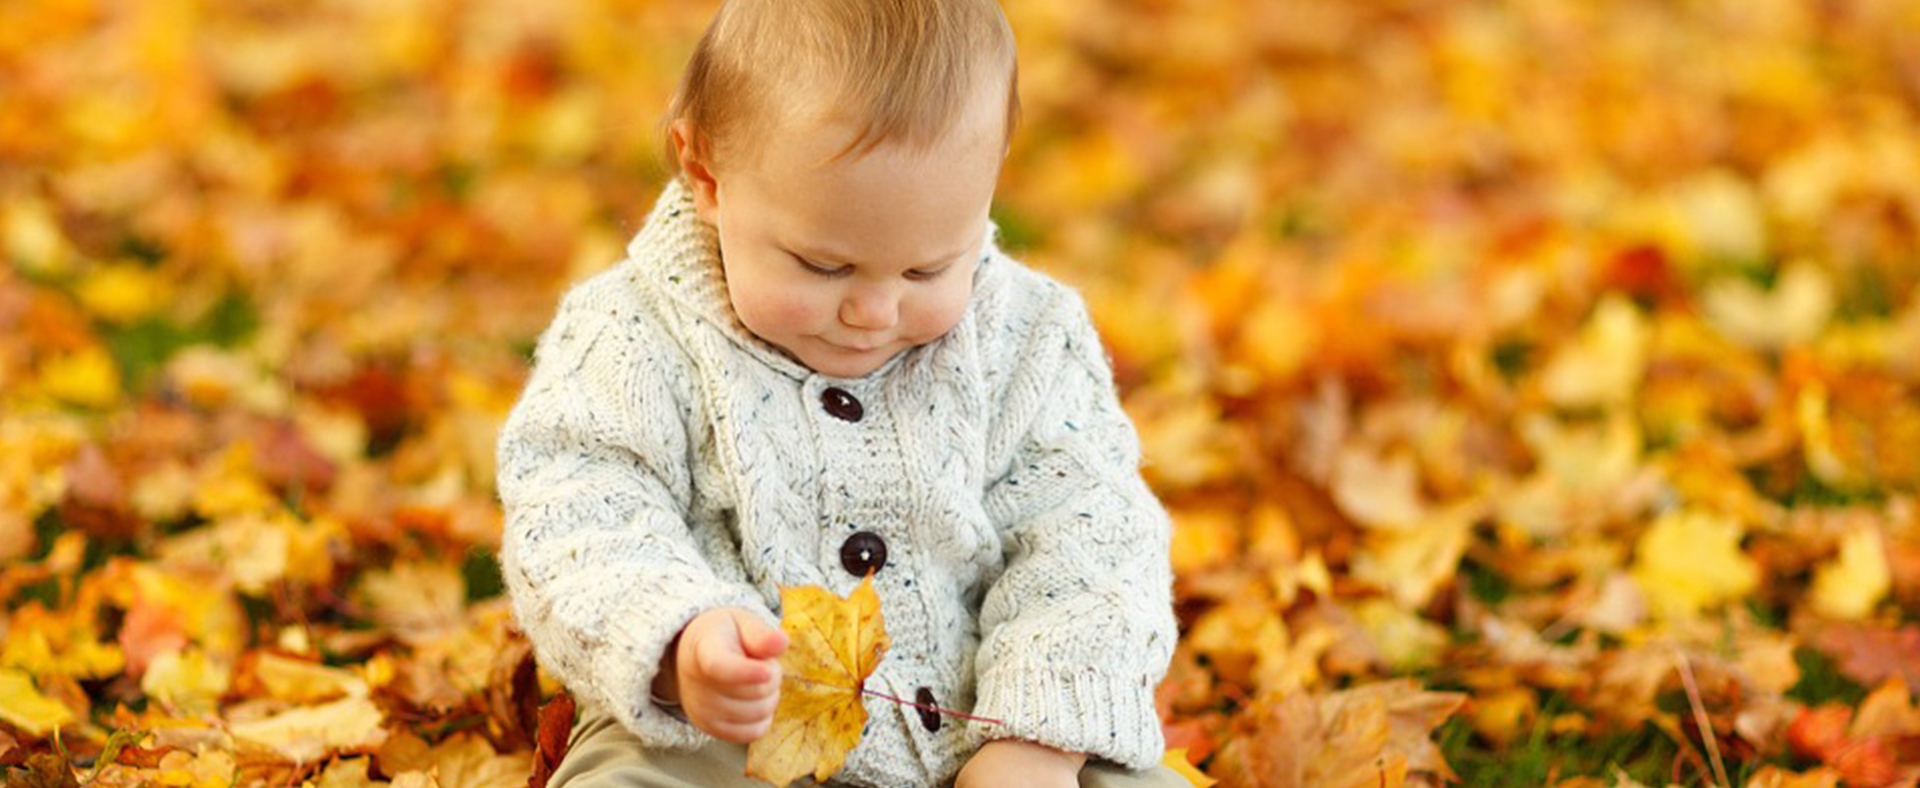 Fall Cleaning to Keep Your Allergies in Check